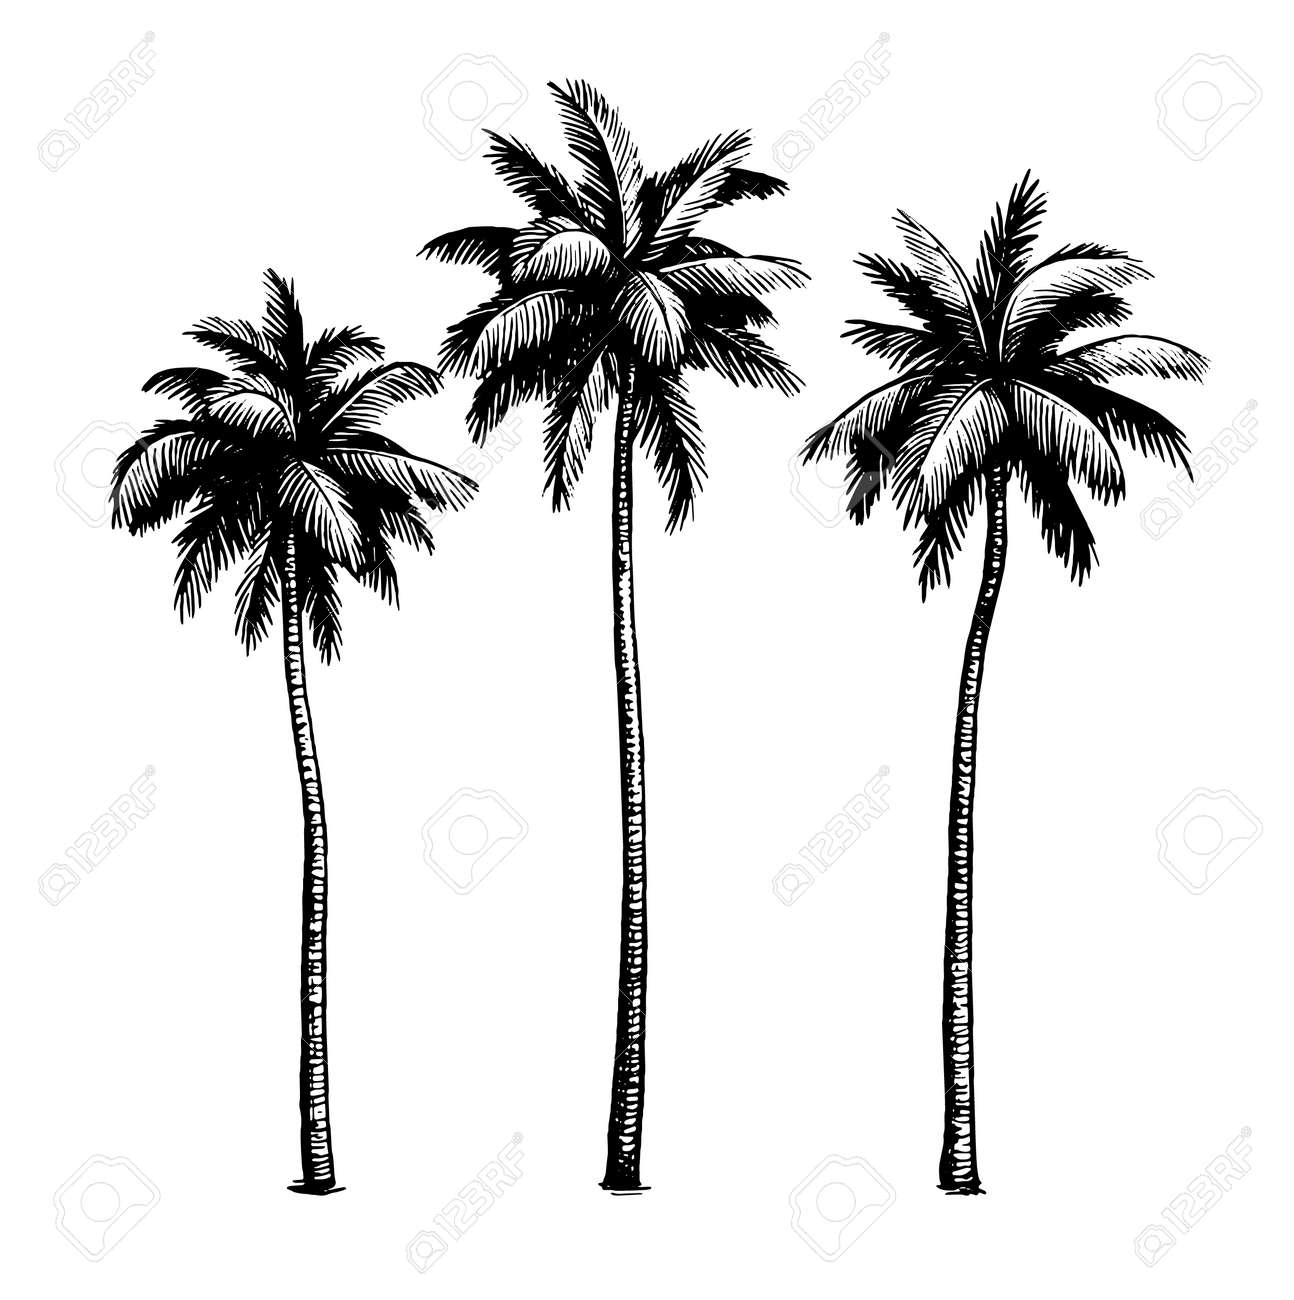 Coconut palm trees. - 166694197